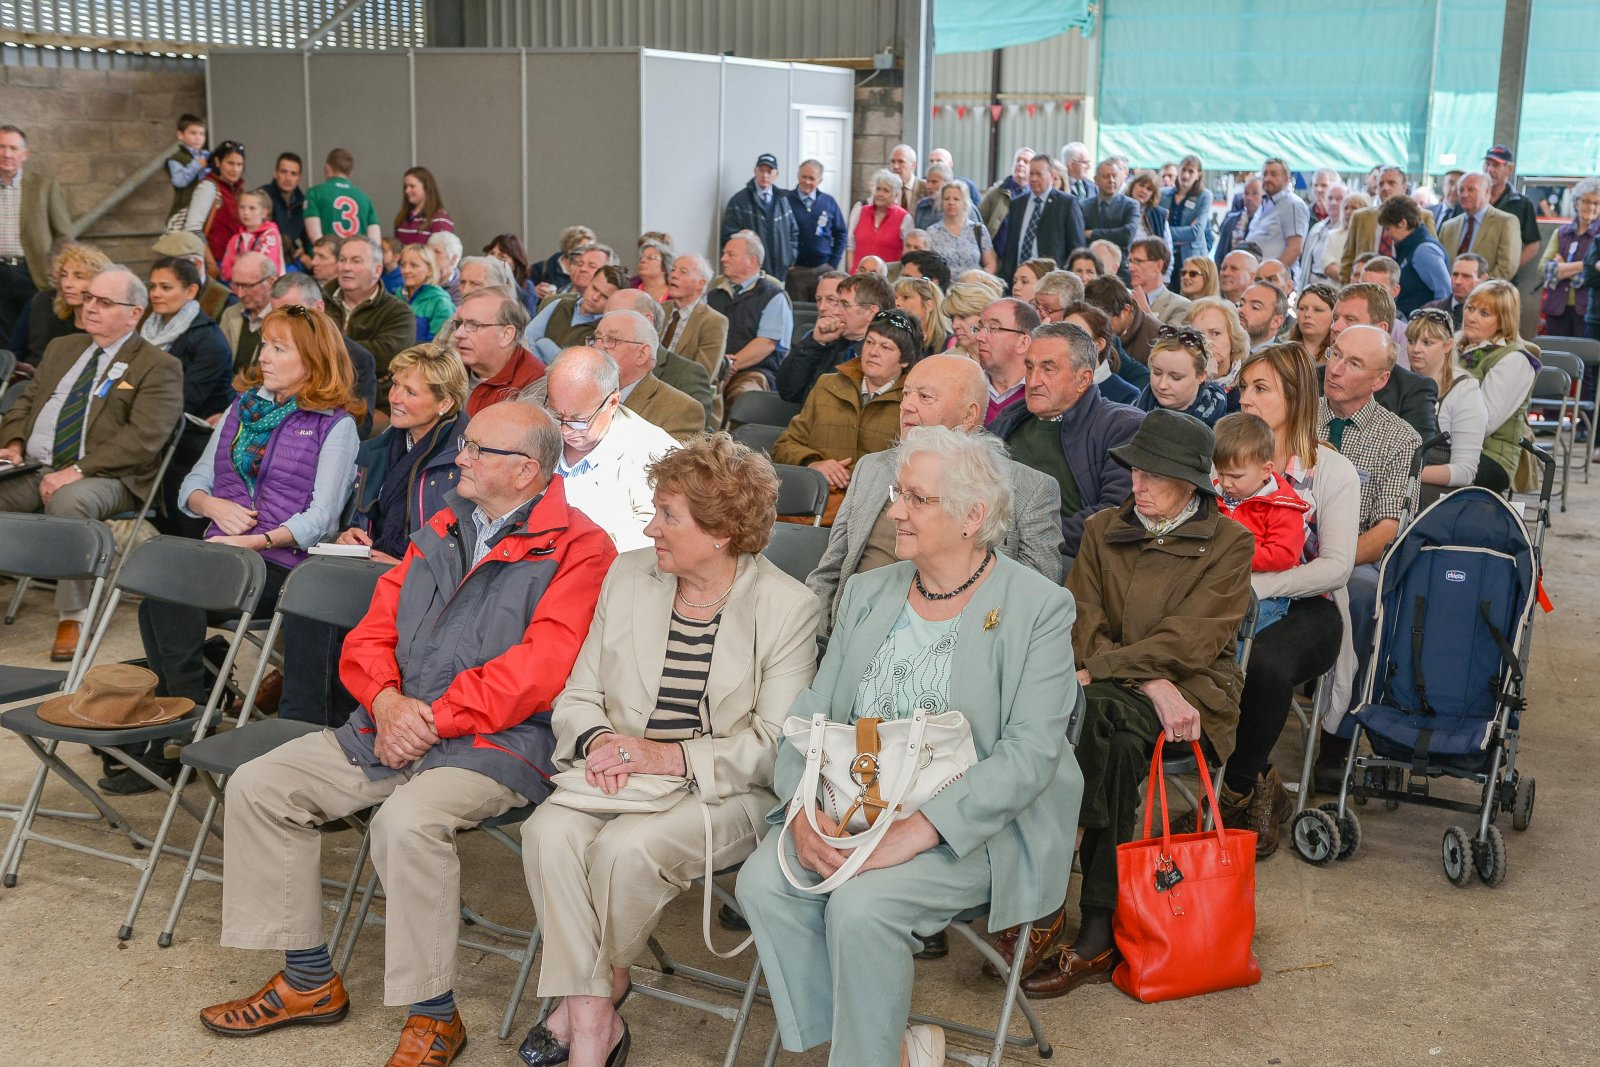 Visitors enjoy the official opening, carried out by main sponsor the Royal Bank of Scotland Chief Executive Ross McEwan..